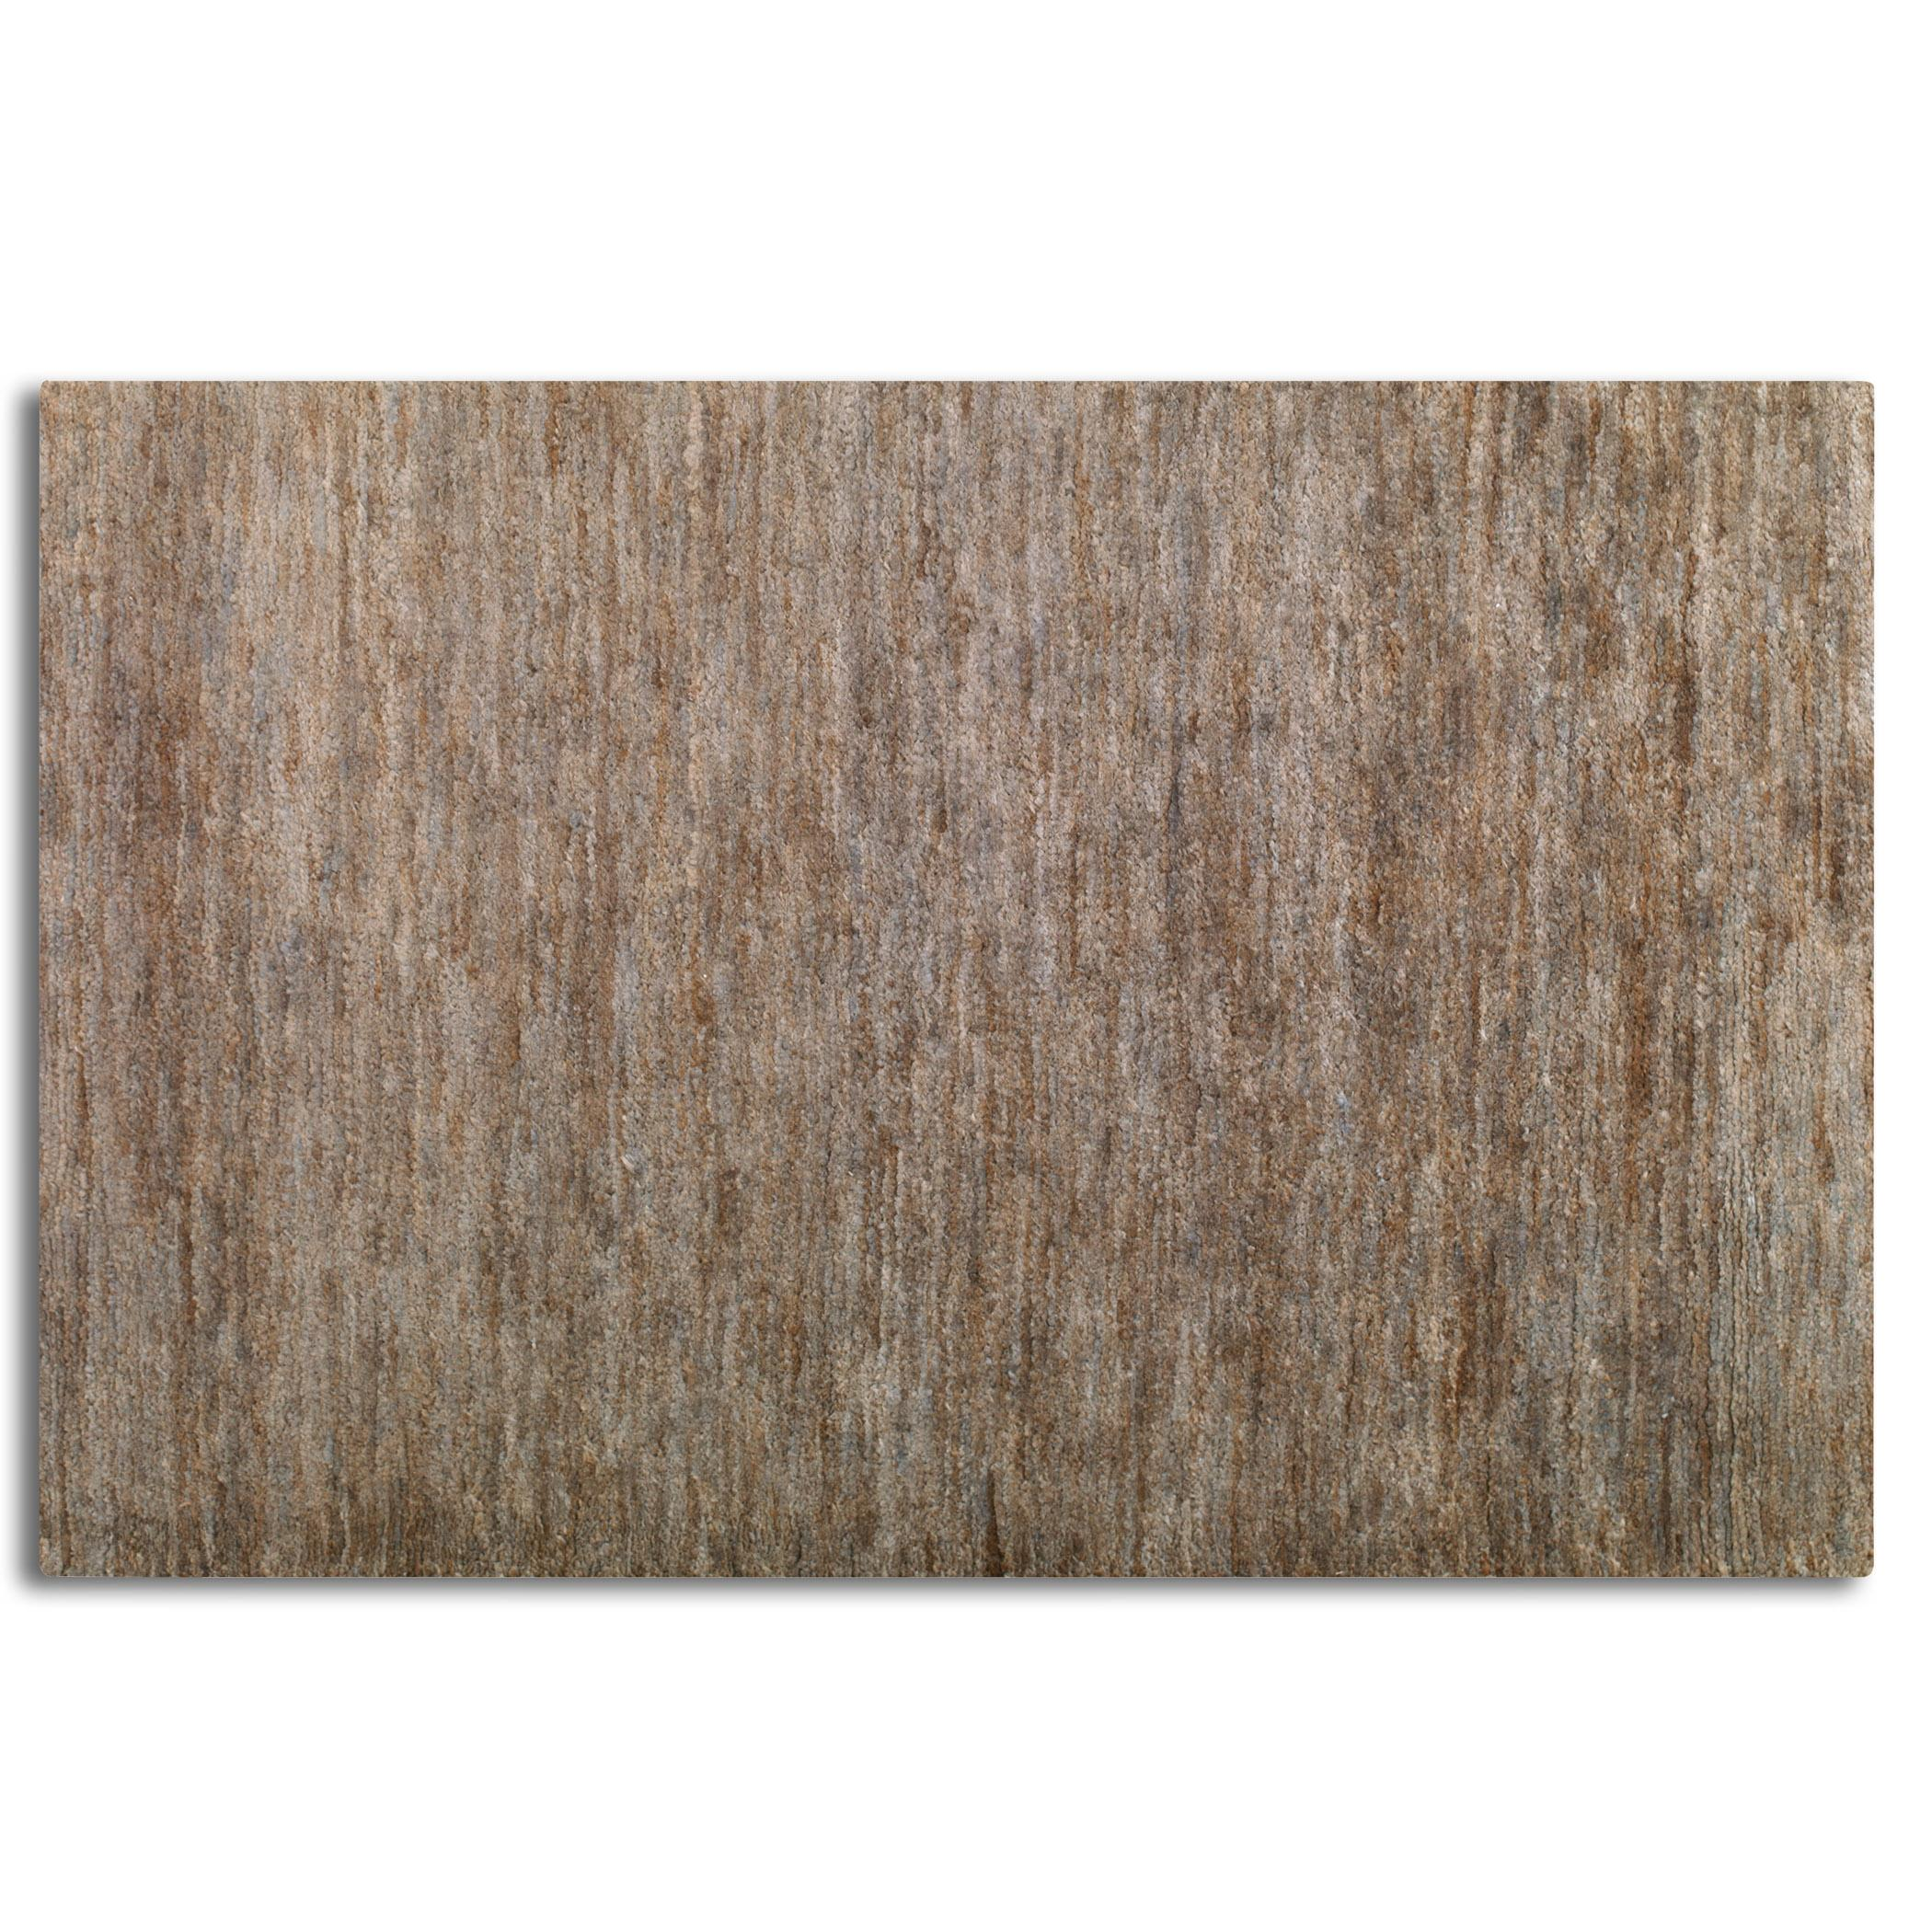 Uttermost Rugs Mounia 8 X 10 Rug - Rust Blue  - Item Number: 70022-8